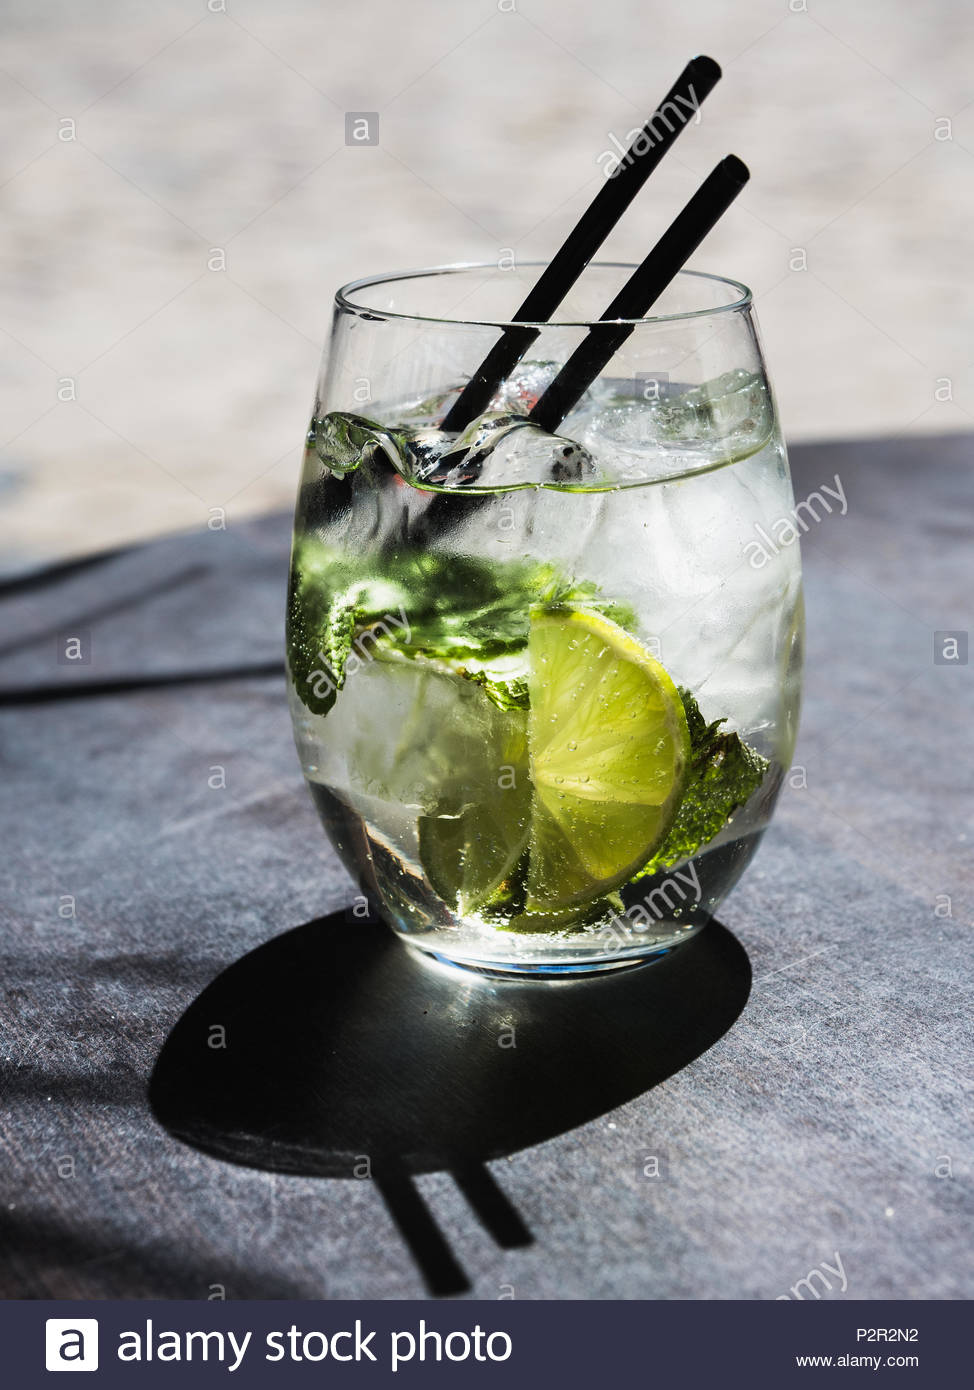 cocktail with lime , ice and peppermint leaves - Stock Image